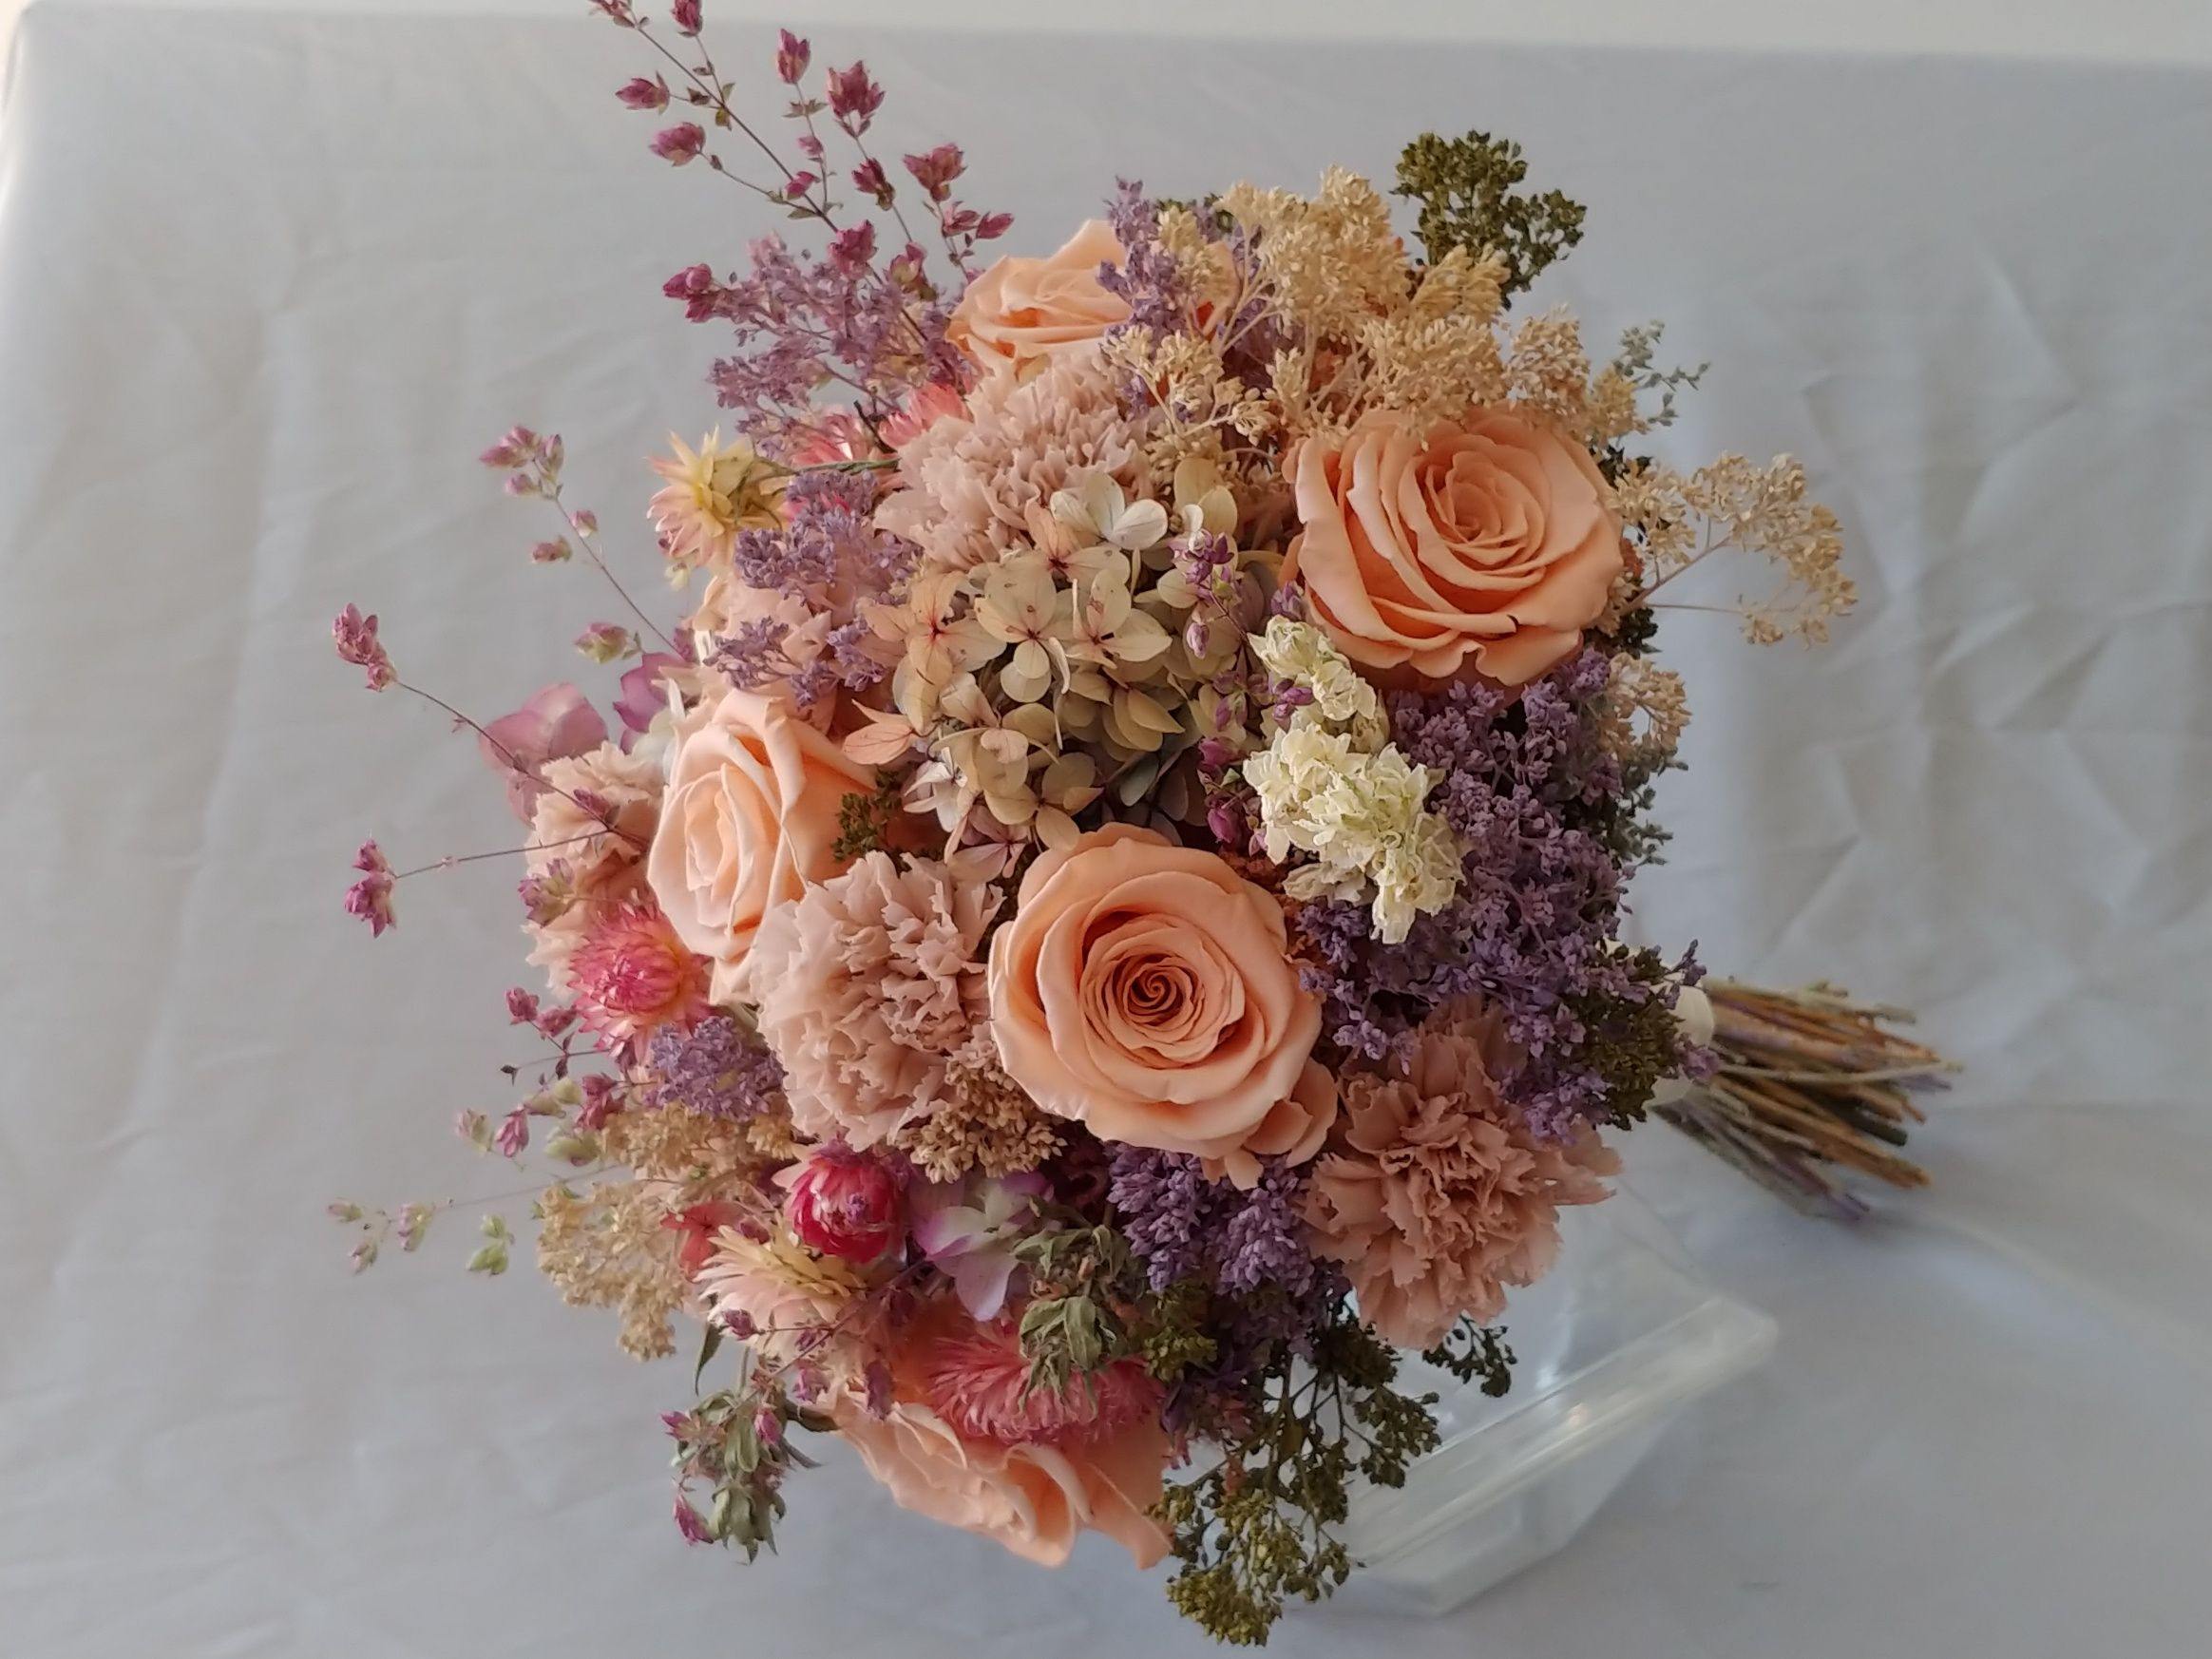 Peach Wedding Bouquet Made From Dried And Preserved Roses